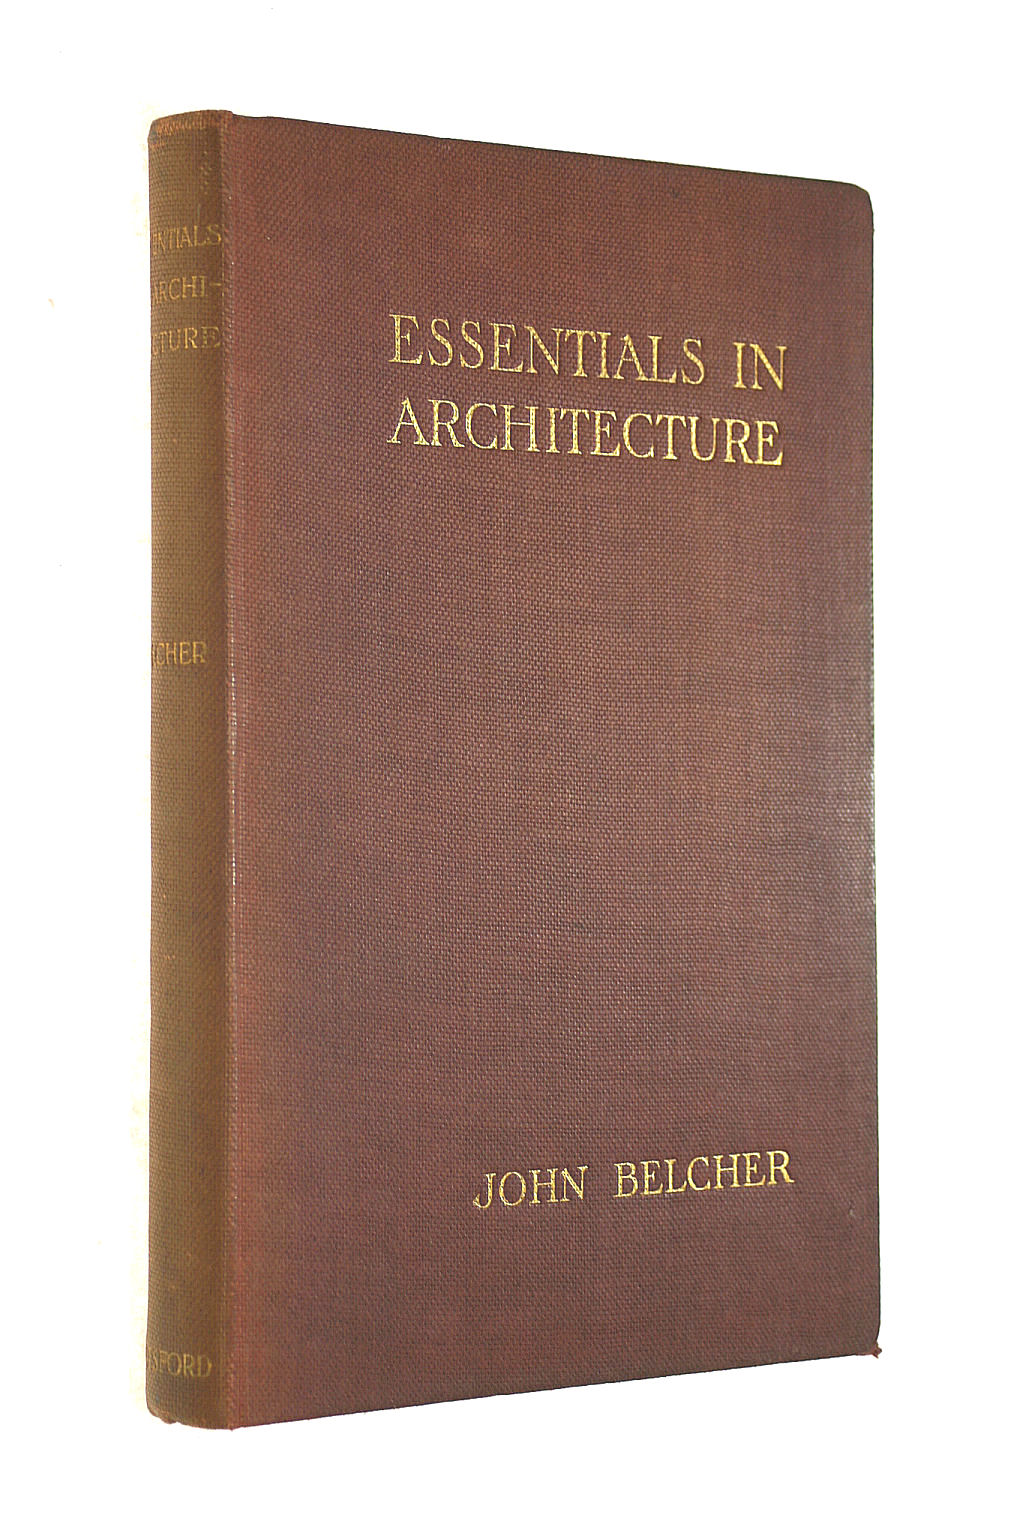 Image for Essentials In Architecture: An Analysis Of The Principles And Qualities To Be Looked For In Buildings.